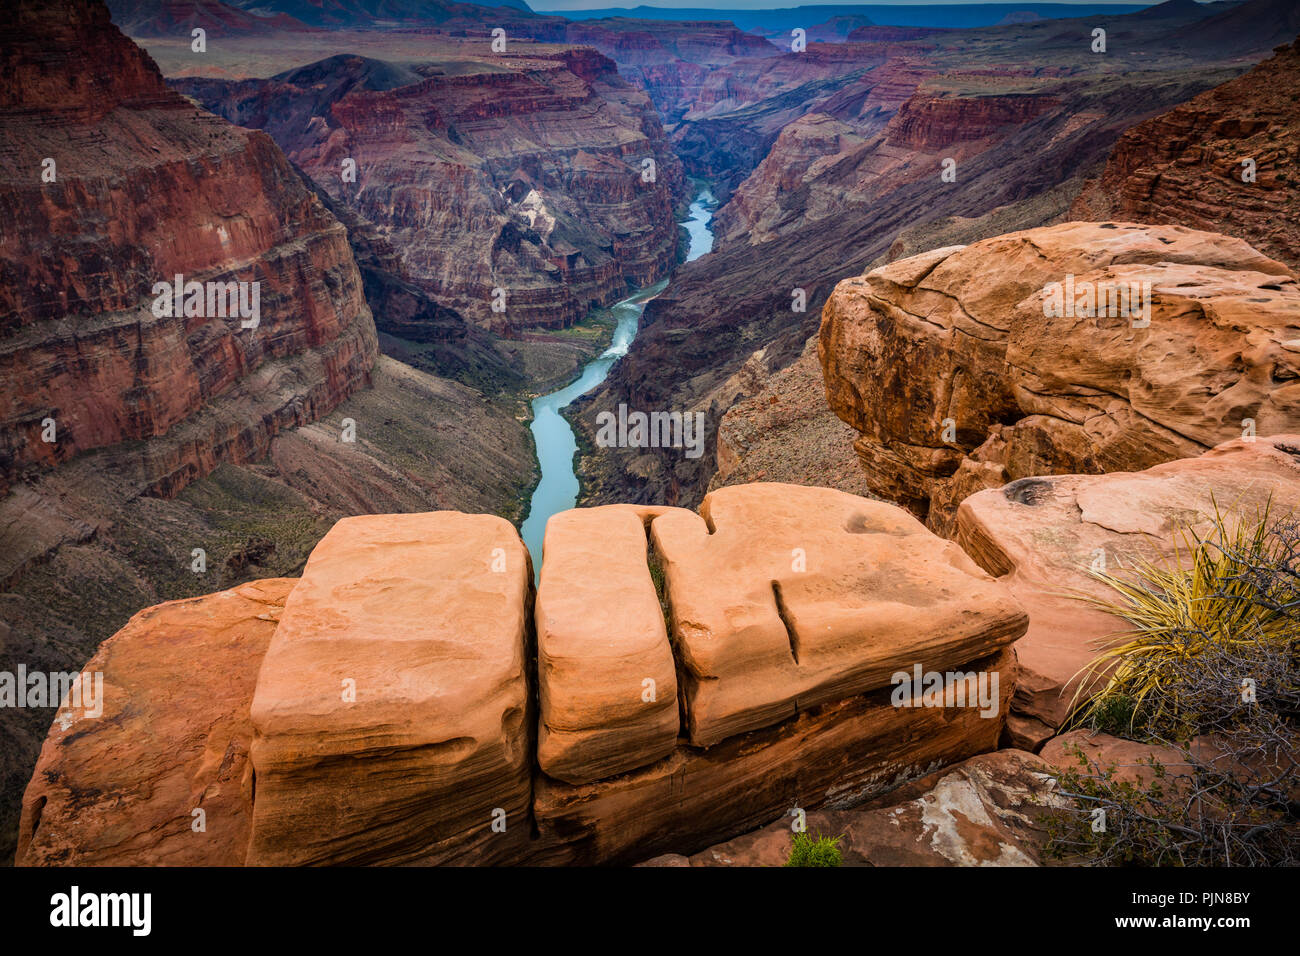 Grand Canyon from Toroweap Point. The Grand Canyon is a steep-sided canyon carved by the Colorado River in the state of Arizona. - Stock Image